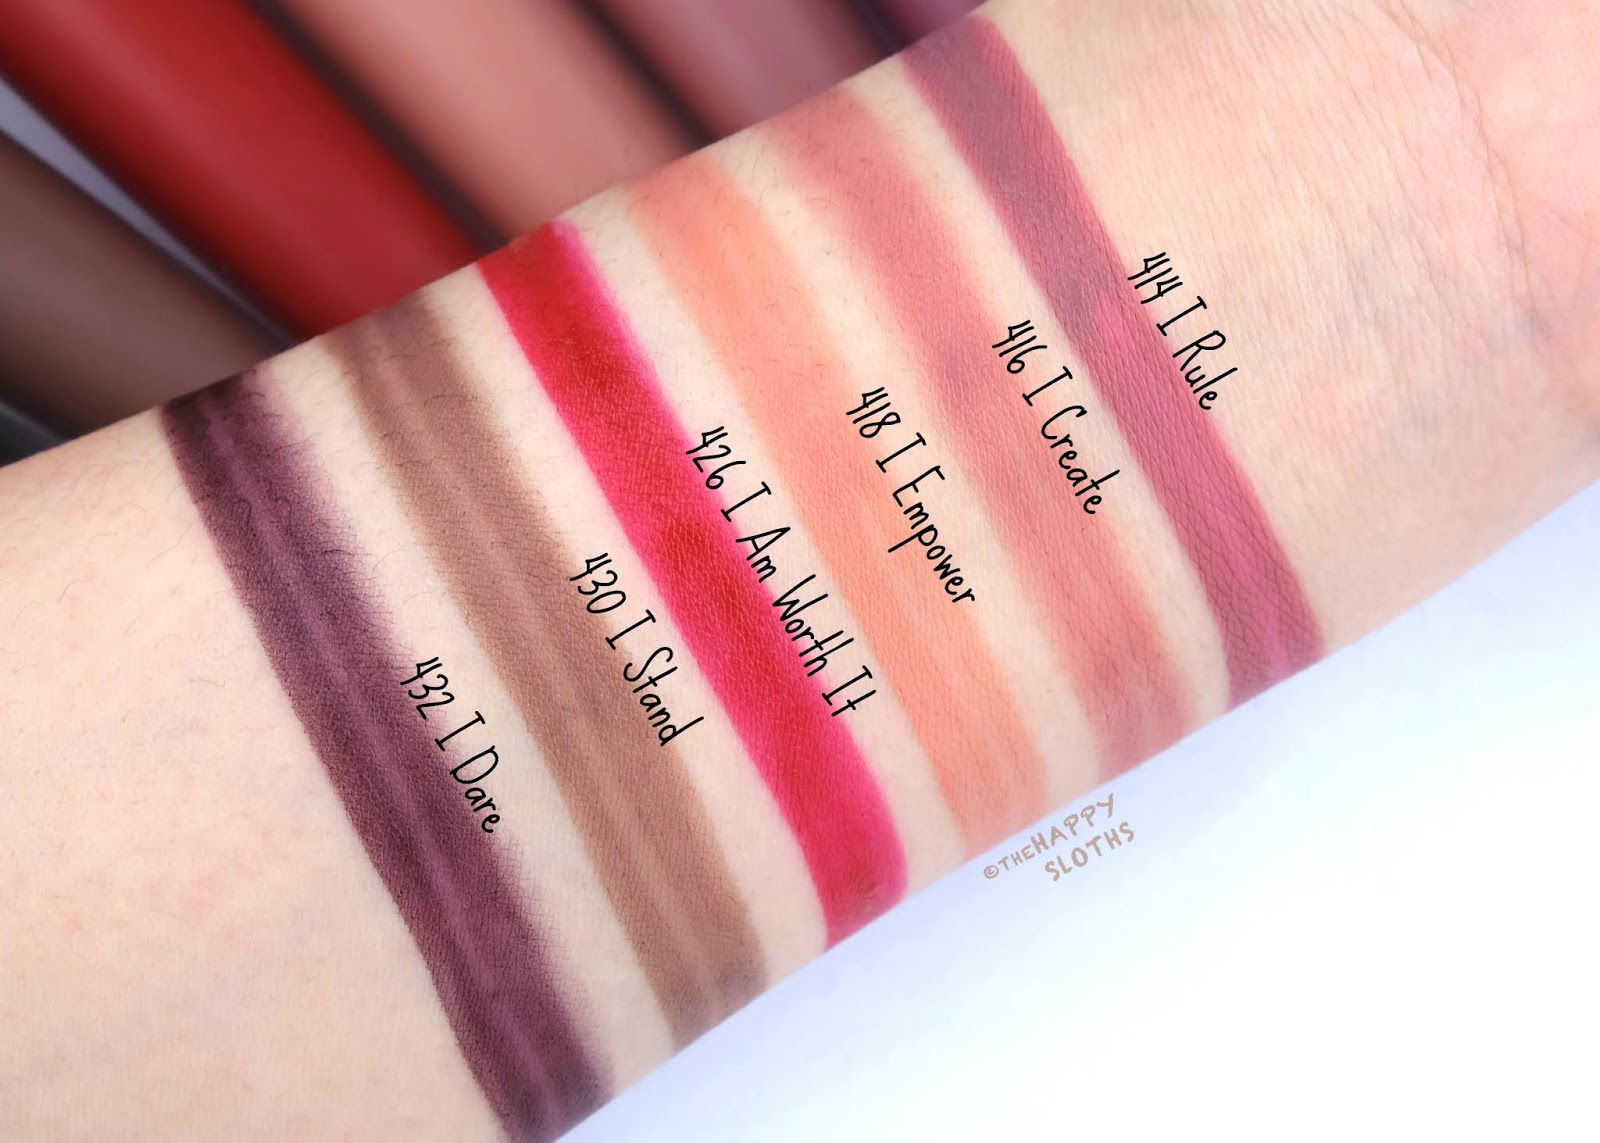 L'Oreal | Rouge Signature Matte Liquid Lipstick: Review and Swatches